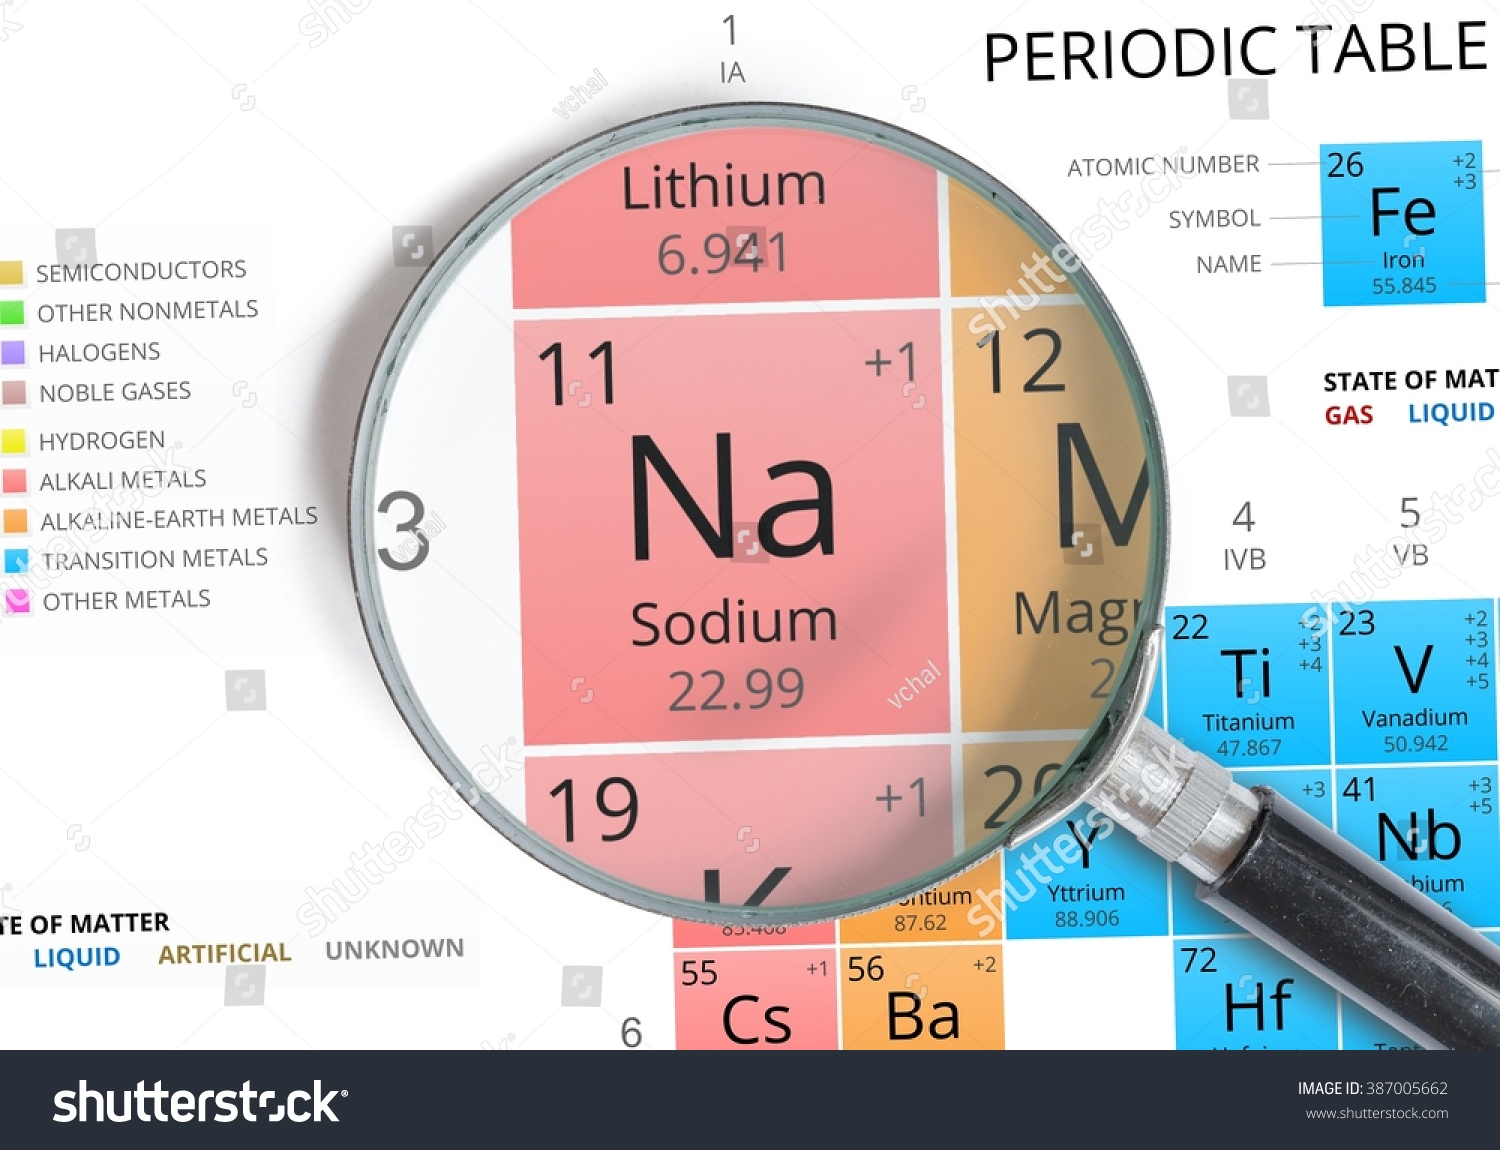 Periodic table glass symbol choice image periodic table and sample what is the symbol for sodium on the periodic table choice image sodium symbol na element urtaz Images